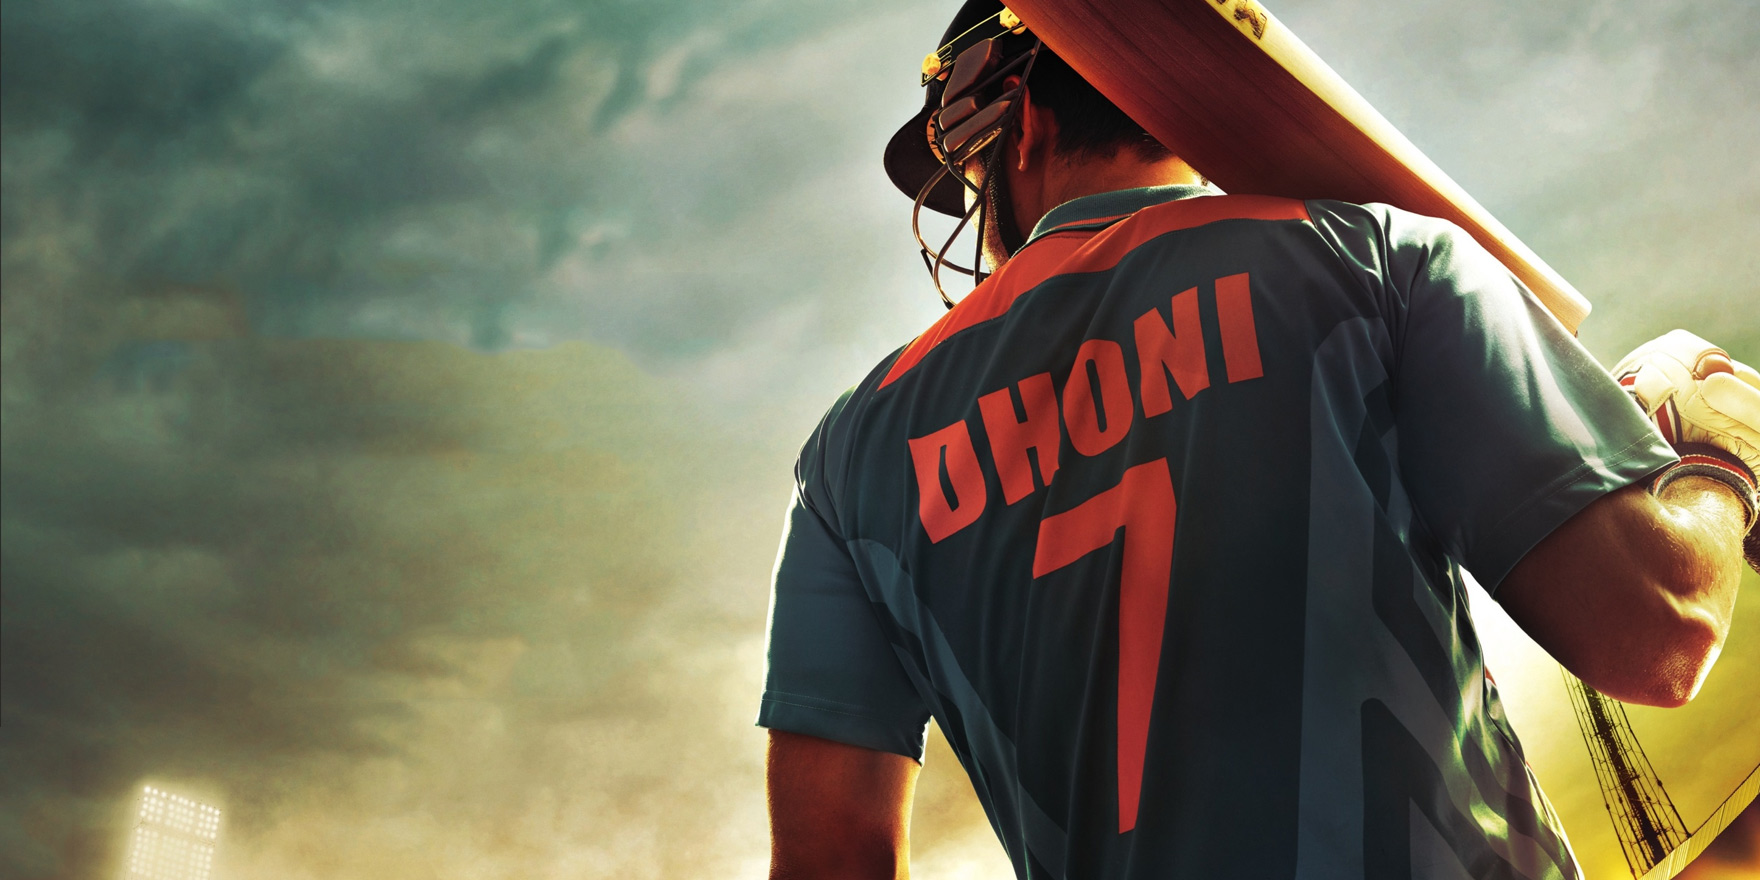 M.S. Dhoni: The Untold Story - Header Image